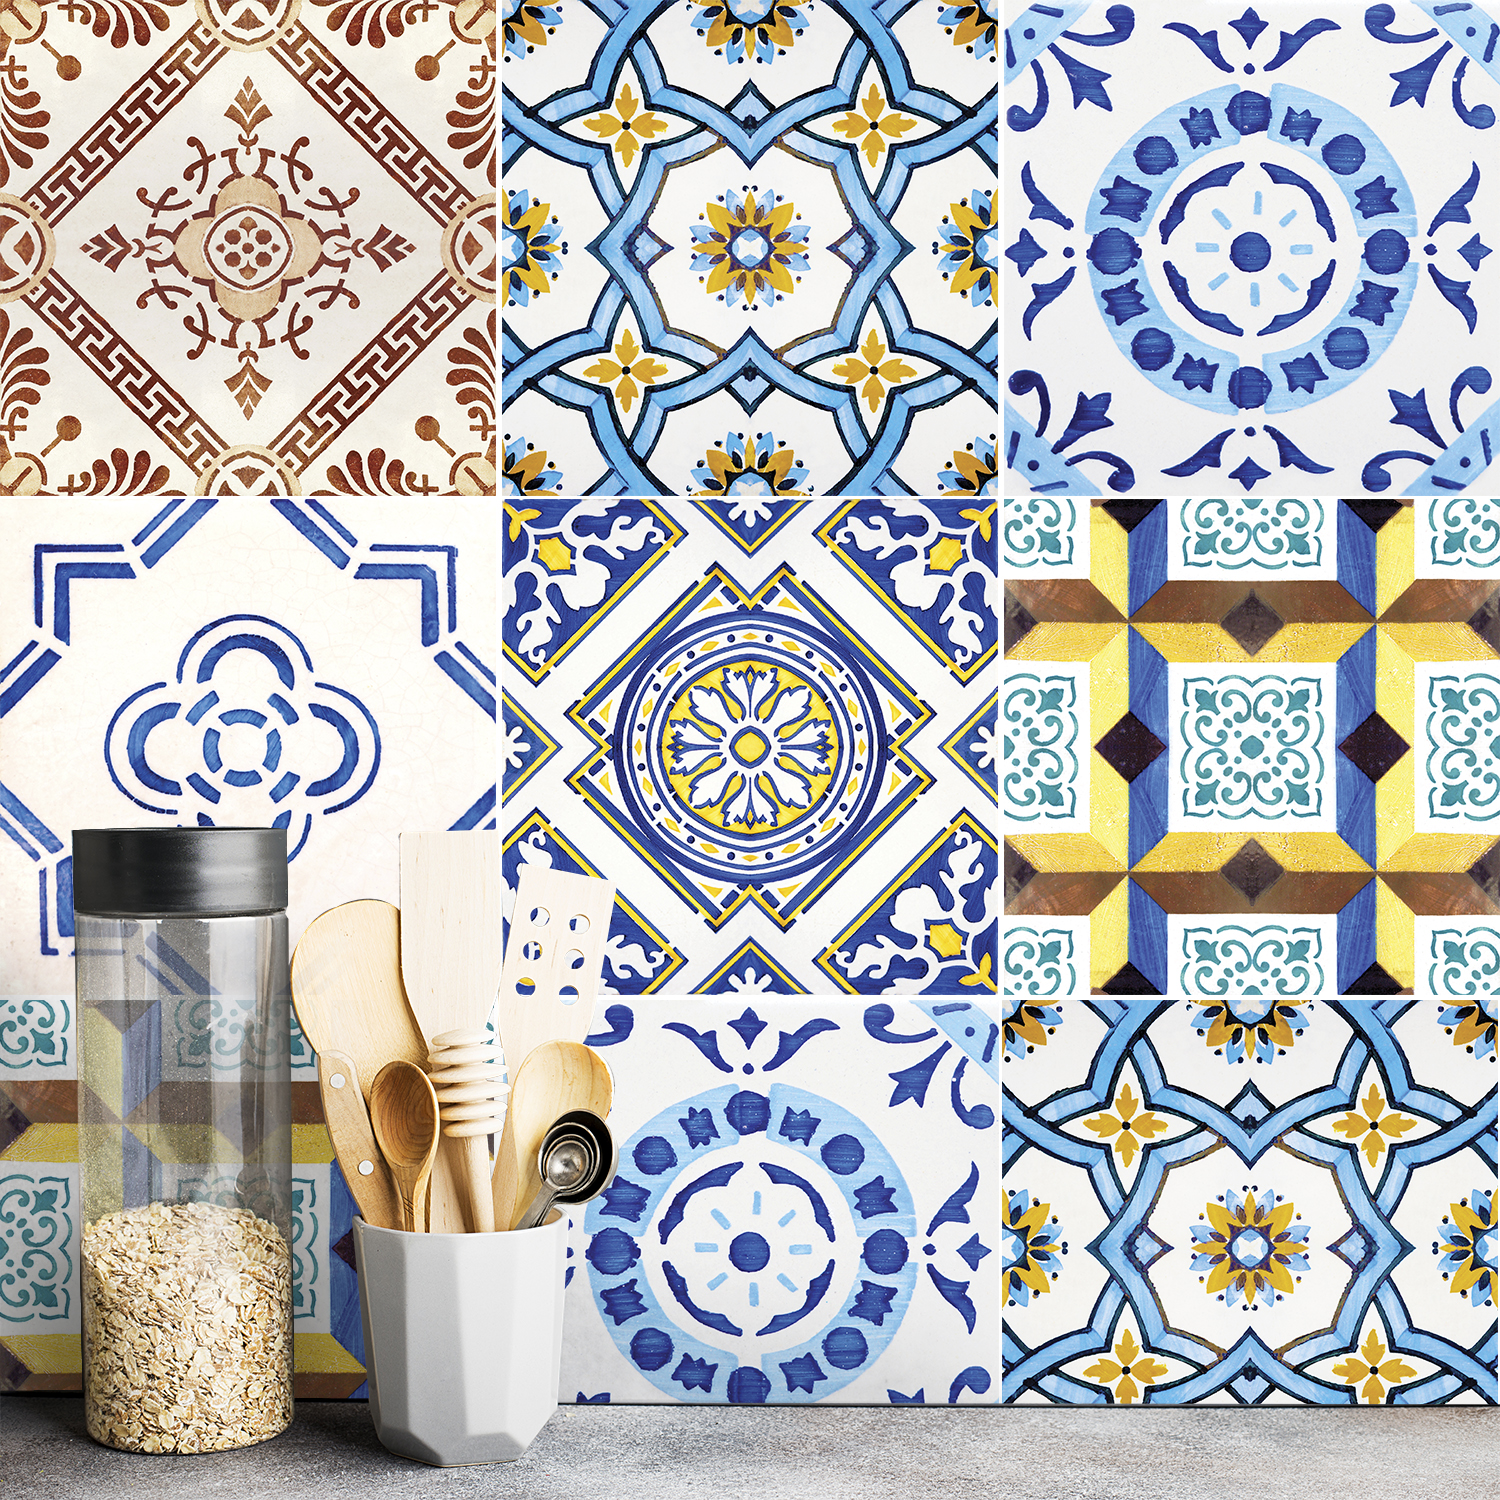 Lisbon Mouraria Tile Decals - Tile Stickers Set For Kitchen & Bathroom, Pack of 12, £8.50, SirFace Graphics (SirFace Graphics/PA)